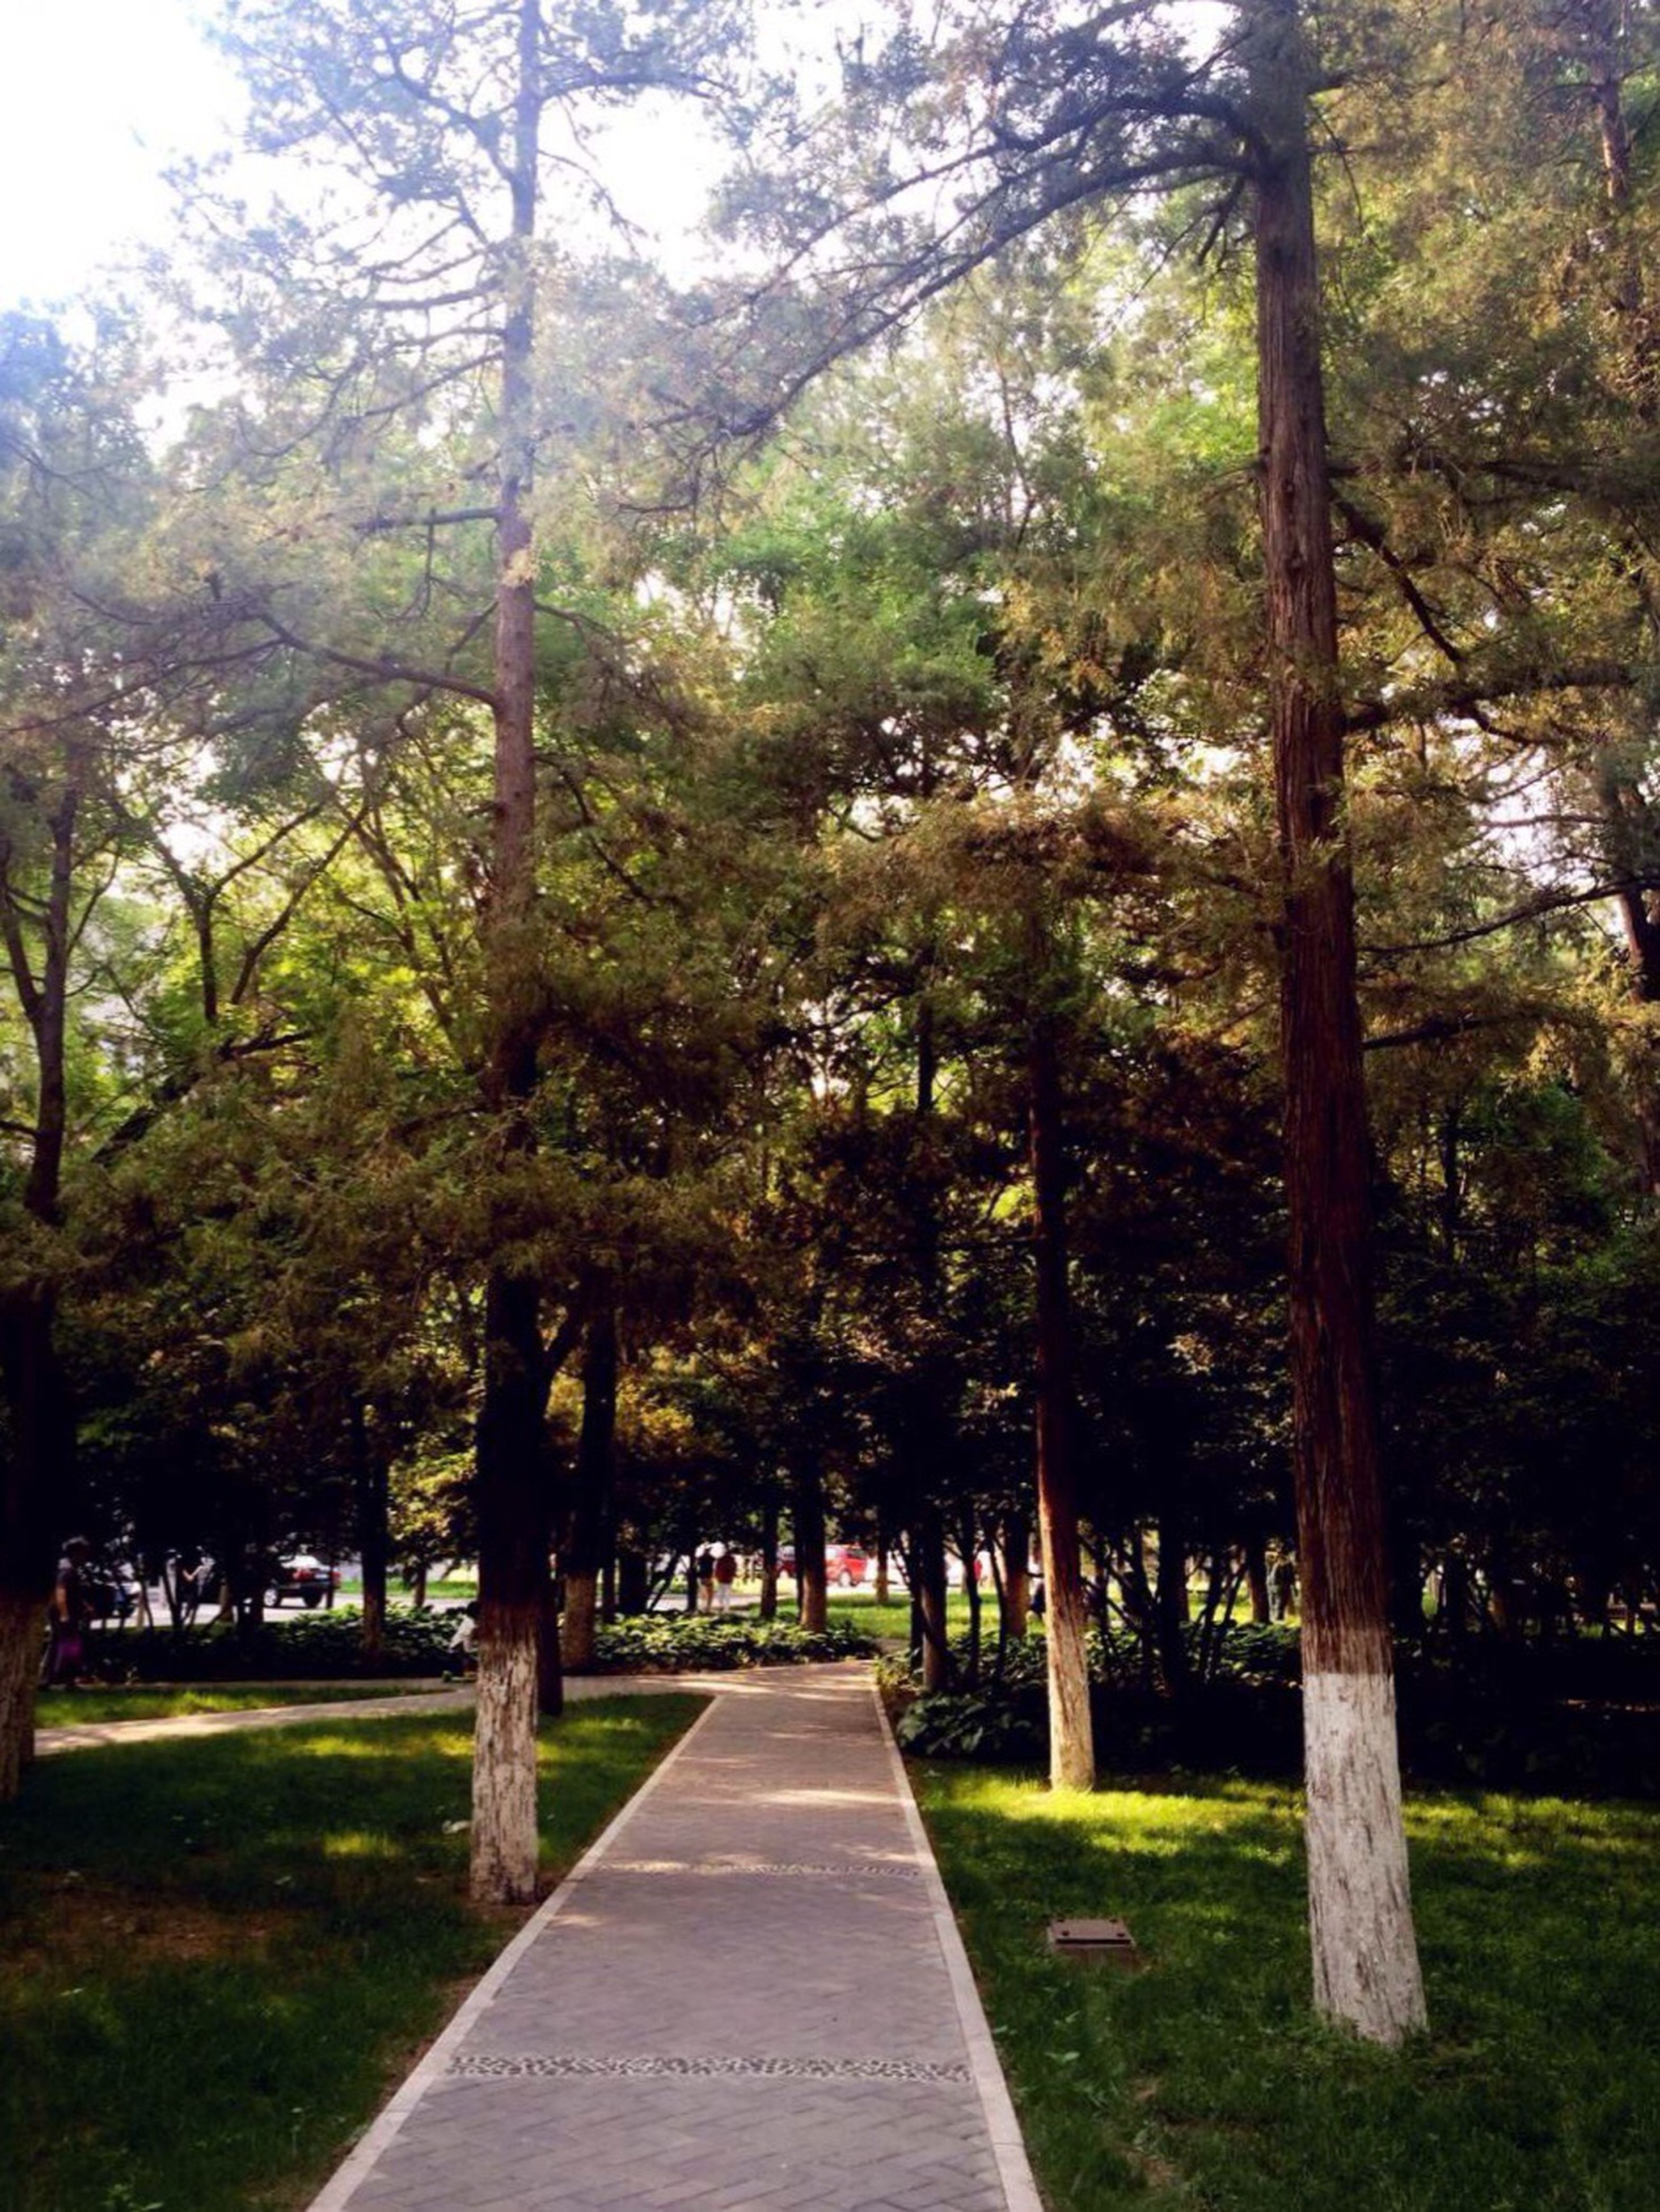 tree, the way forward, grass, park - man made space, tree trunk, growth, green color, footpath, tranquility, diminishing perspective, nature, treelined, tranquil scene, park, empty, sunlight, vanishing point, beauty in nature, walkway, shadow